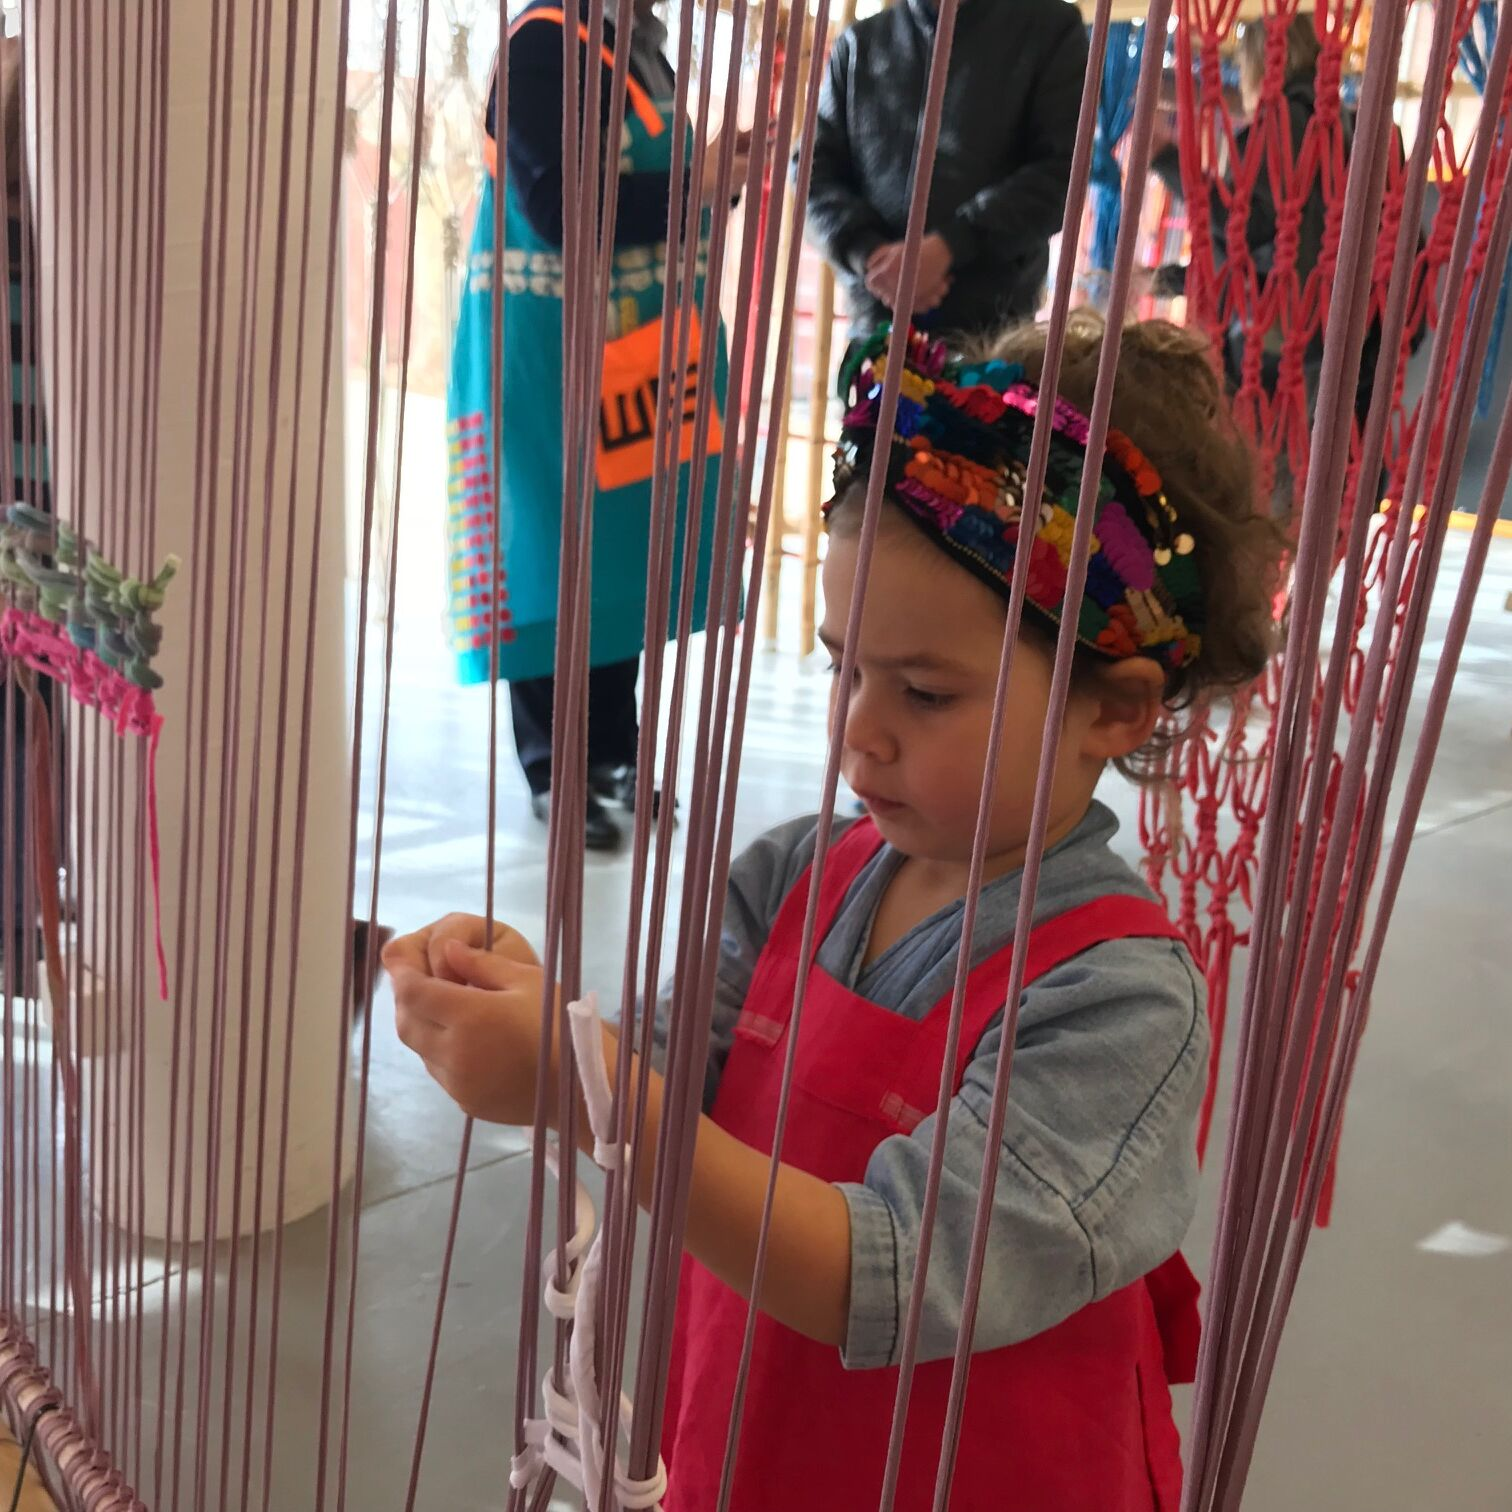 Slow Art Collective's Archi Loom A was presented to celebrate the reopening of Ararat Gallery TAMA